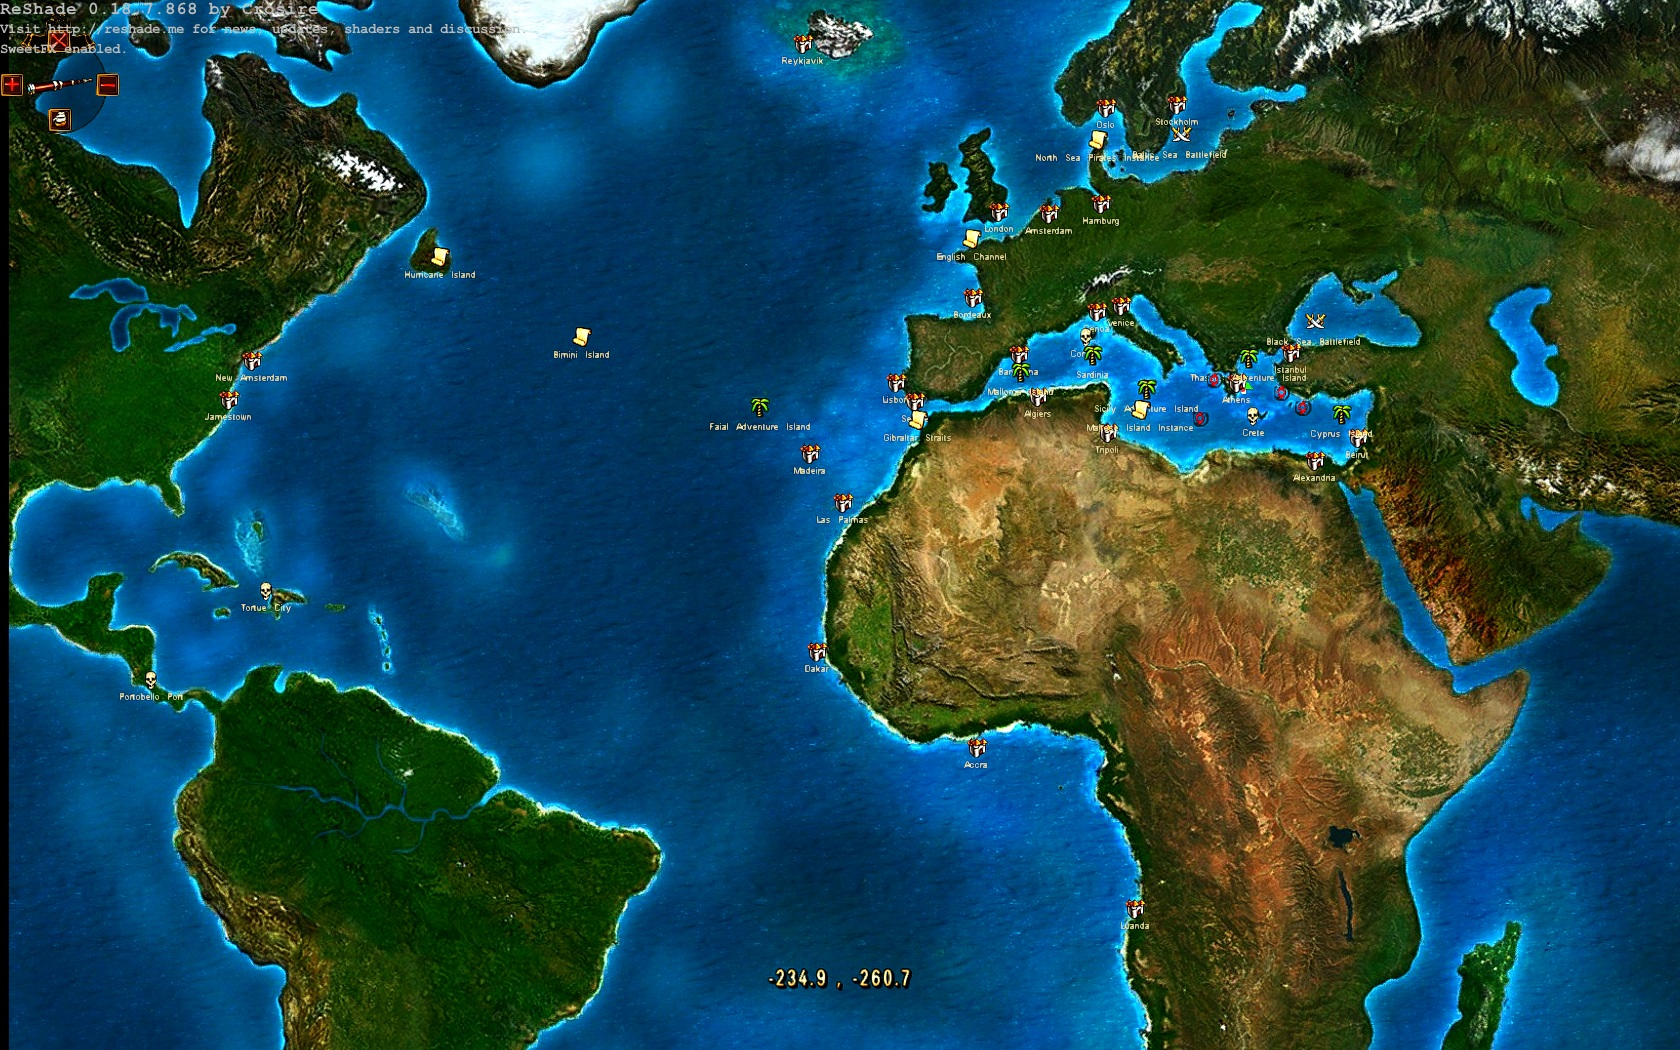 Voyage century online world map image mod db world map view original gumiabroncs Gallery